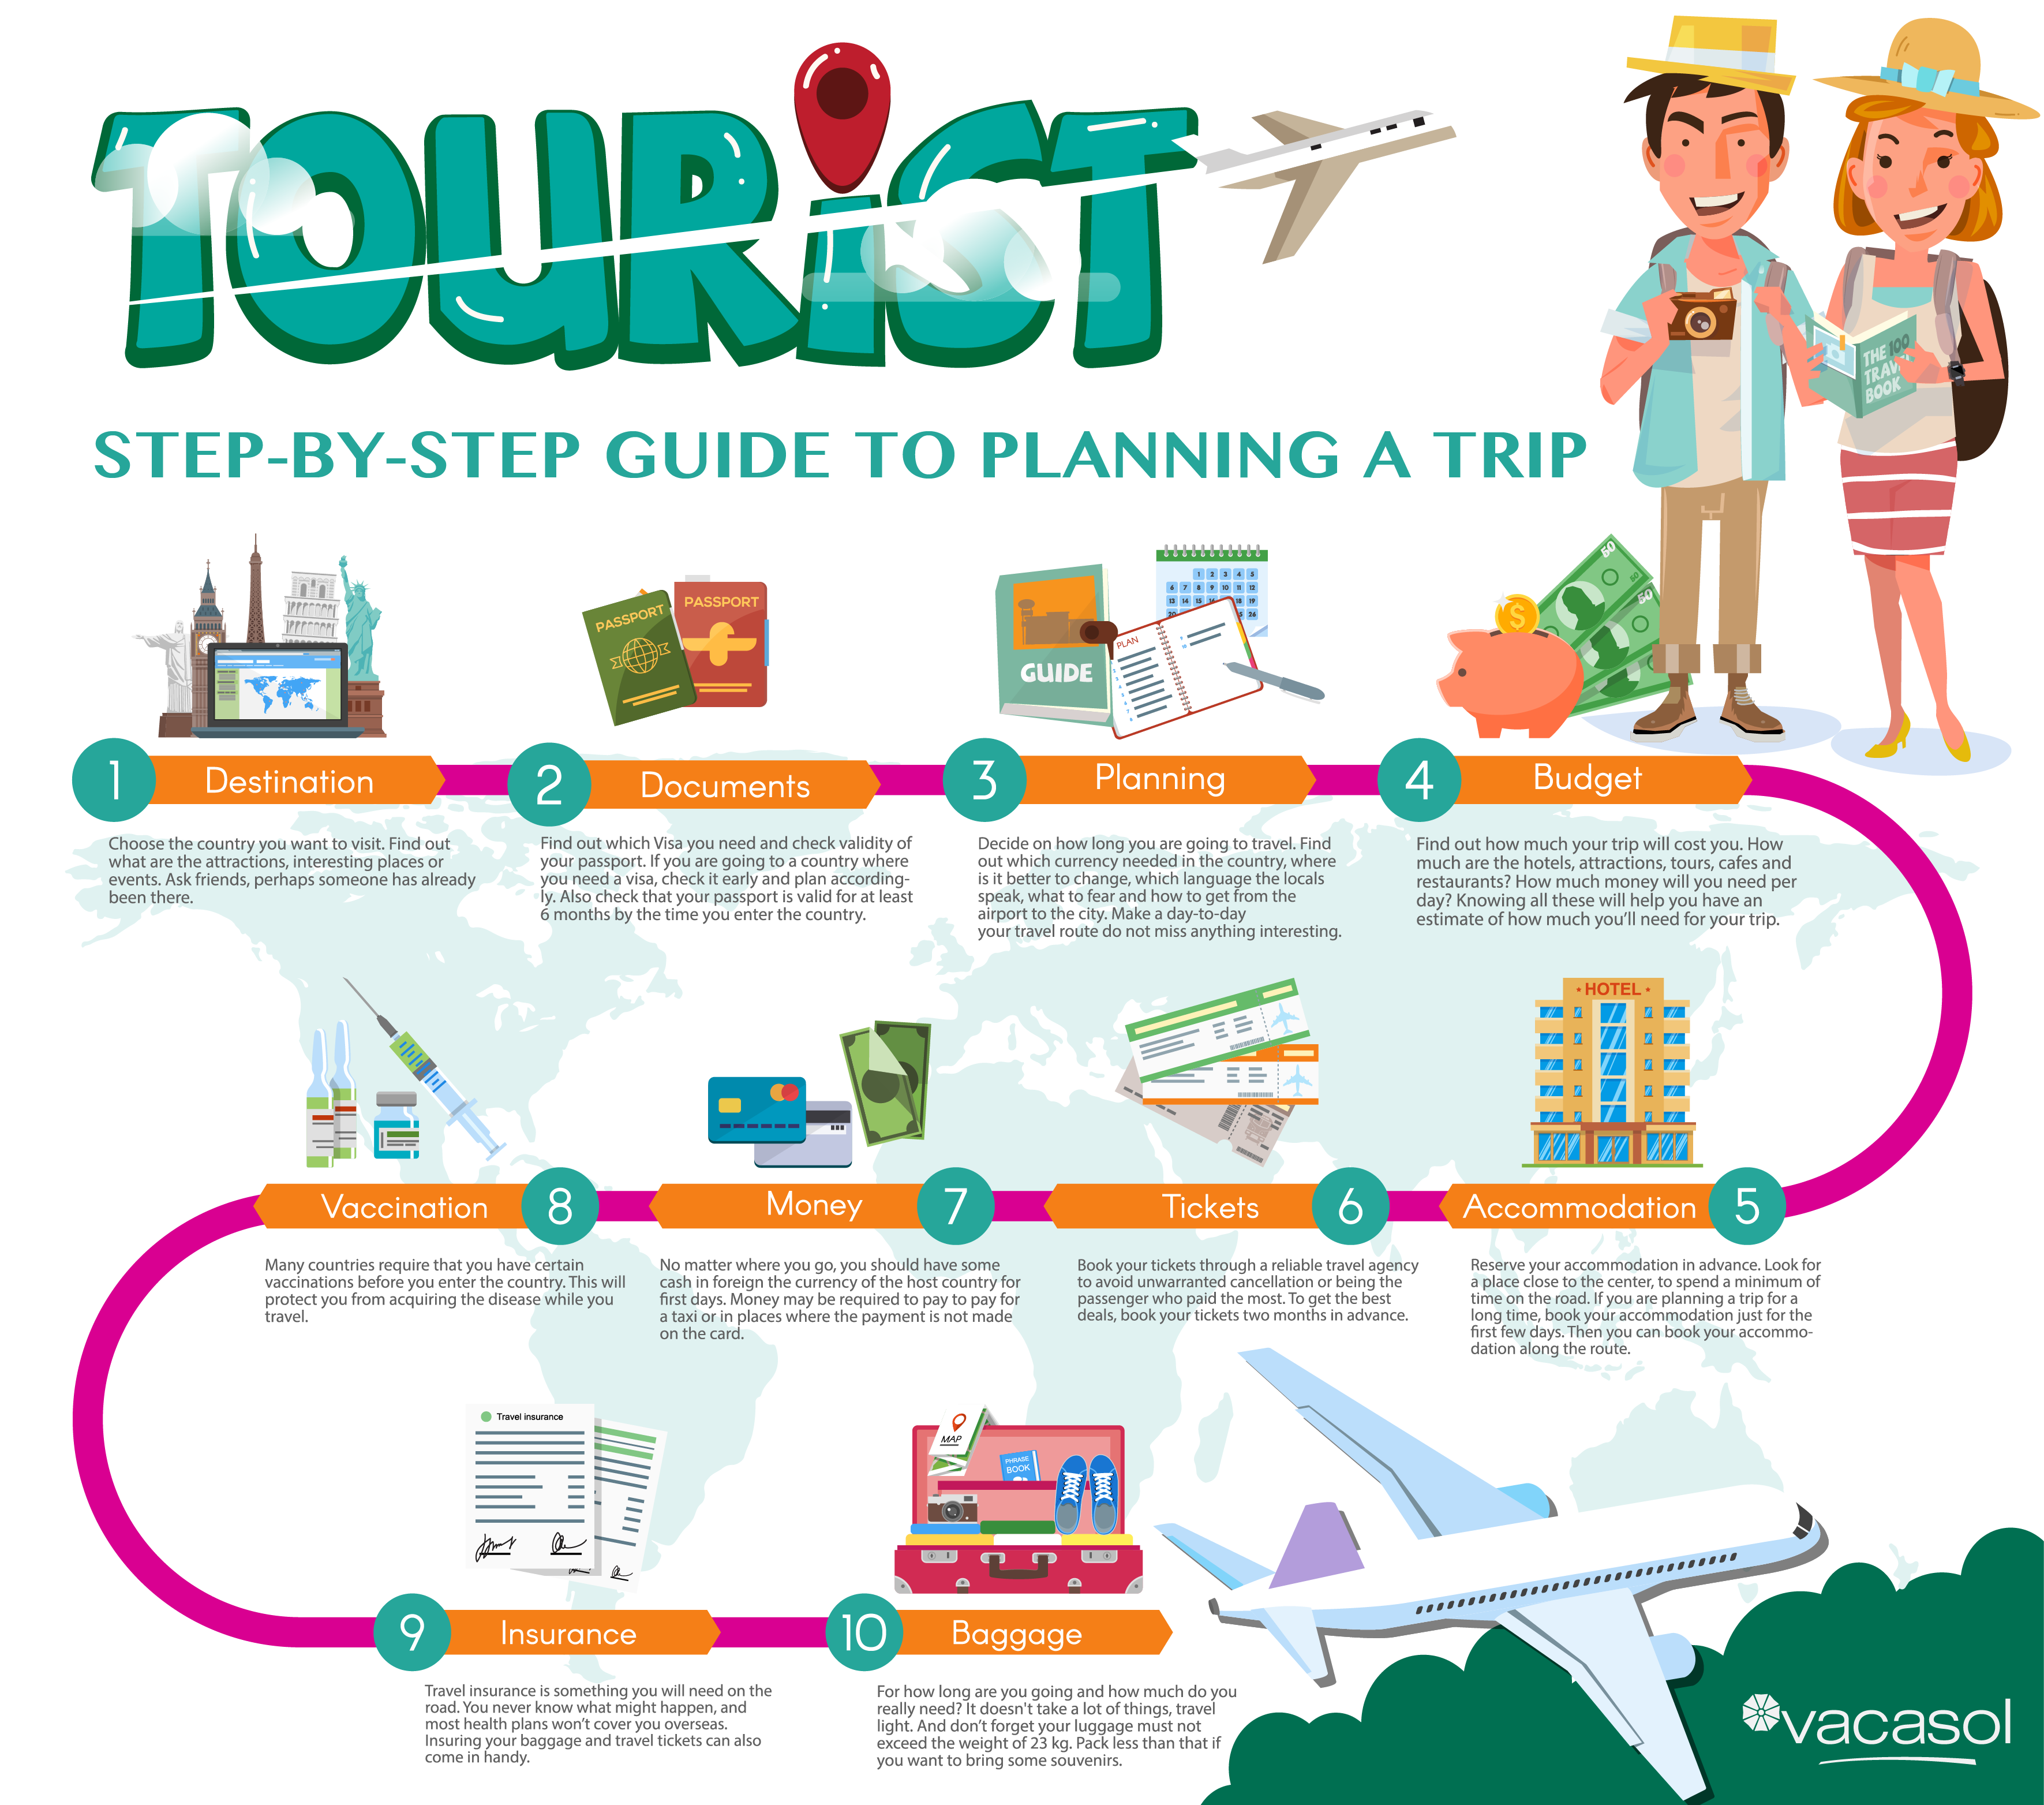 step-by-step-guide-travel-01 - Going On A Trip PNG